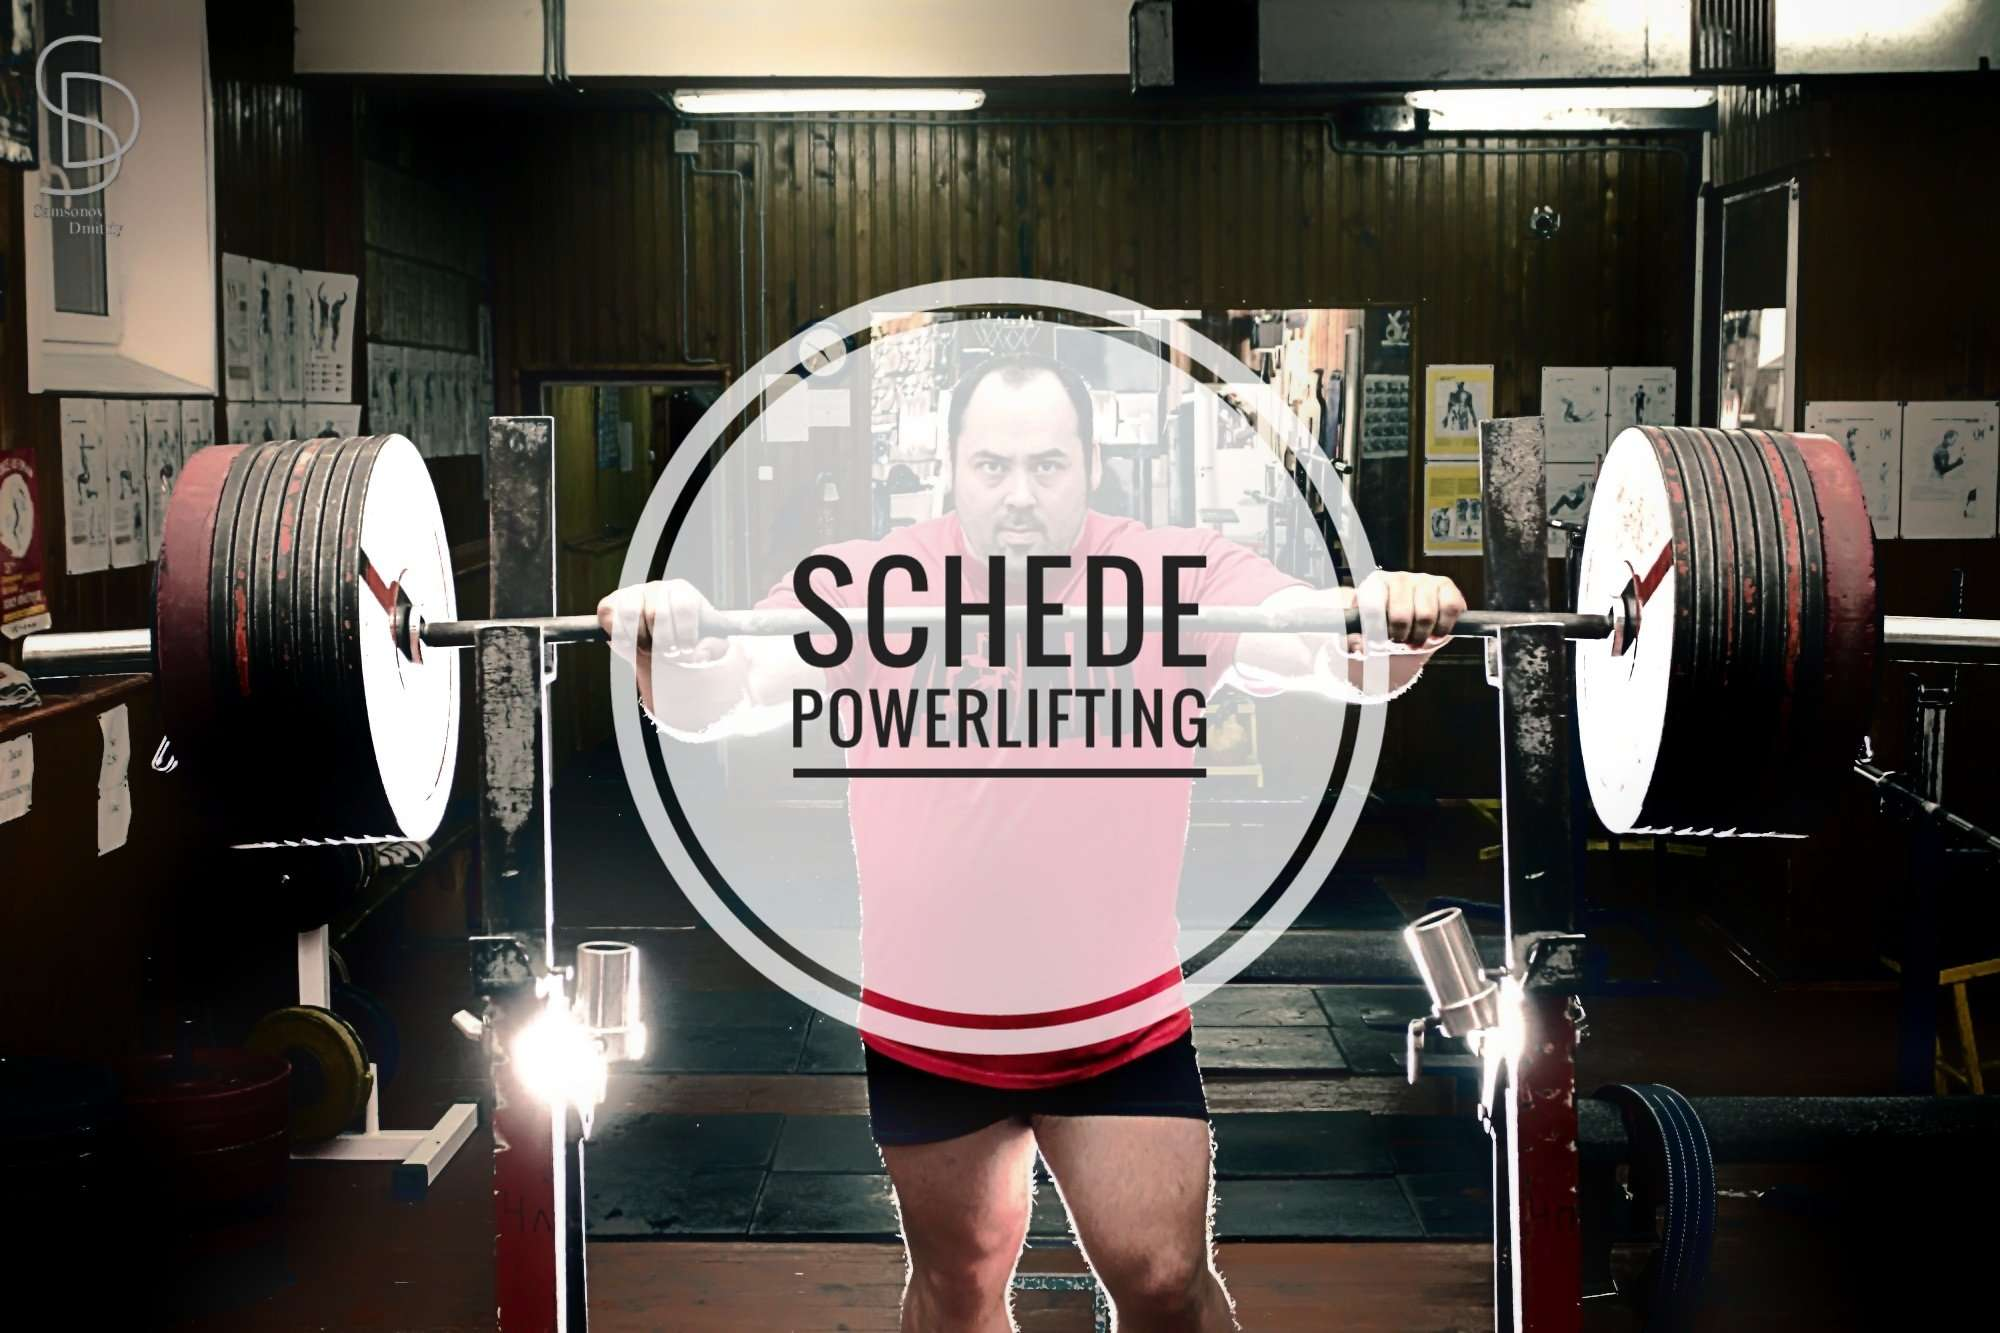 schede powerlifting